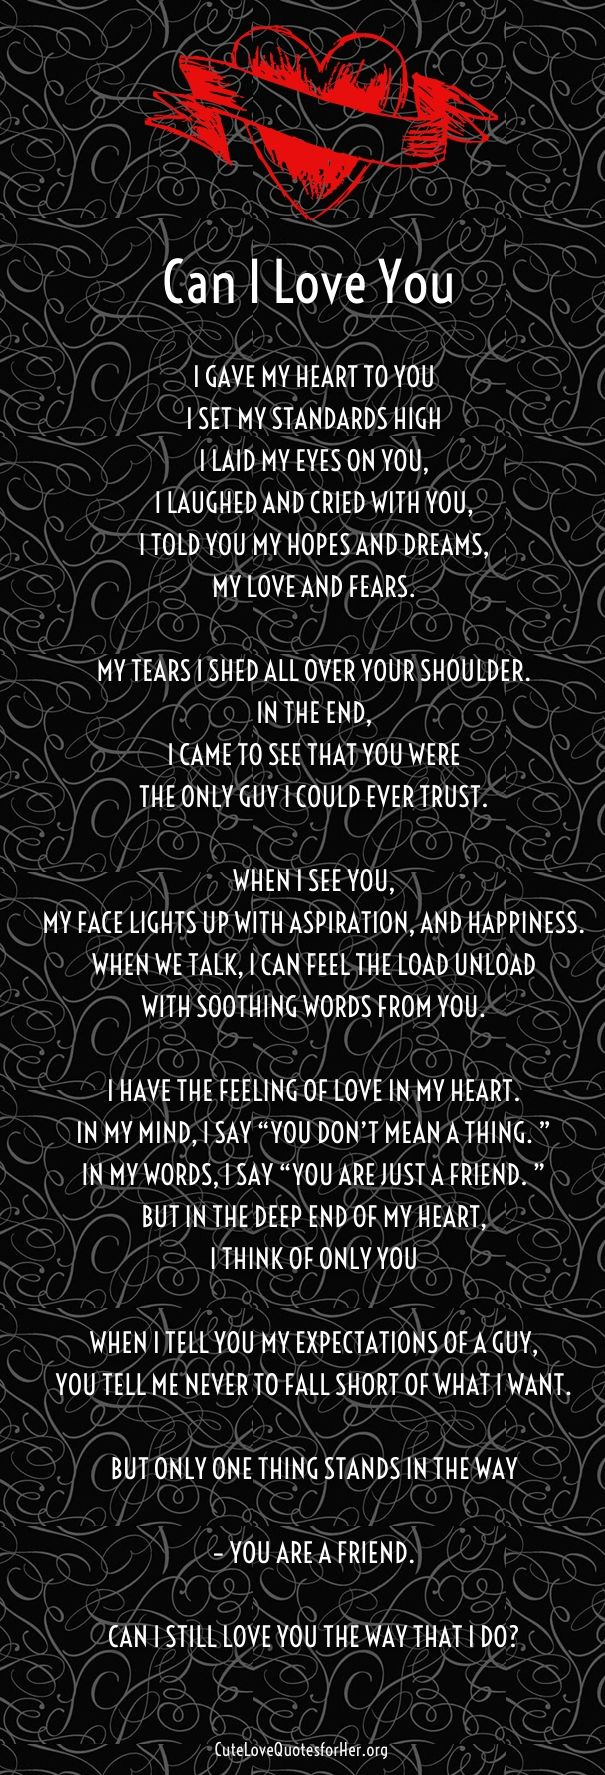 long-love-poems-for-him.jpg (605×1775)